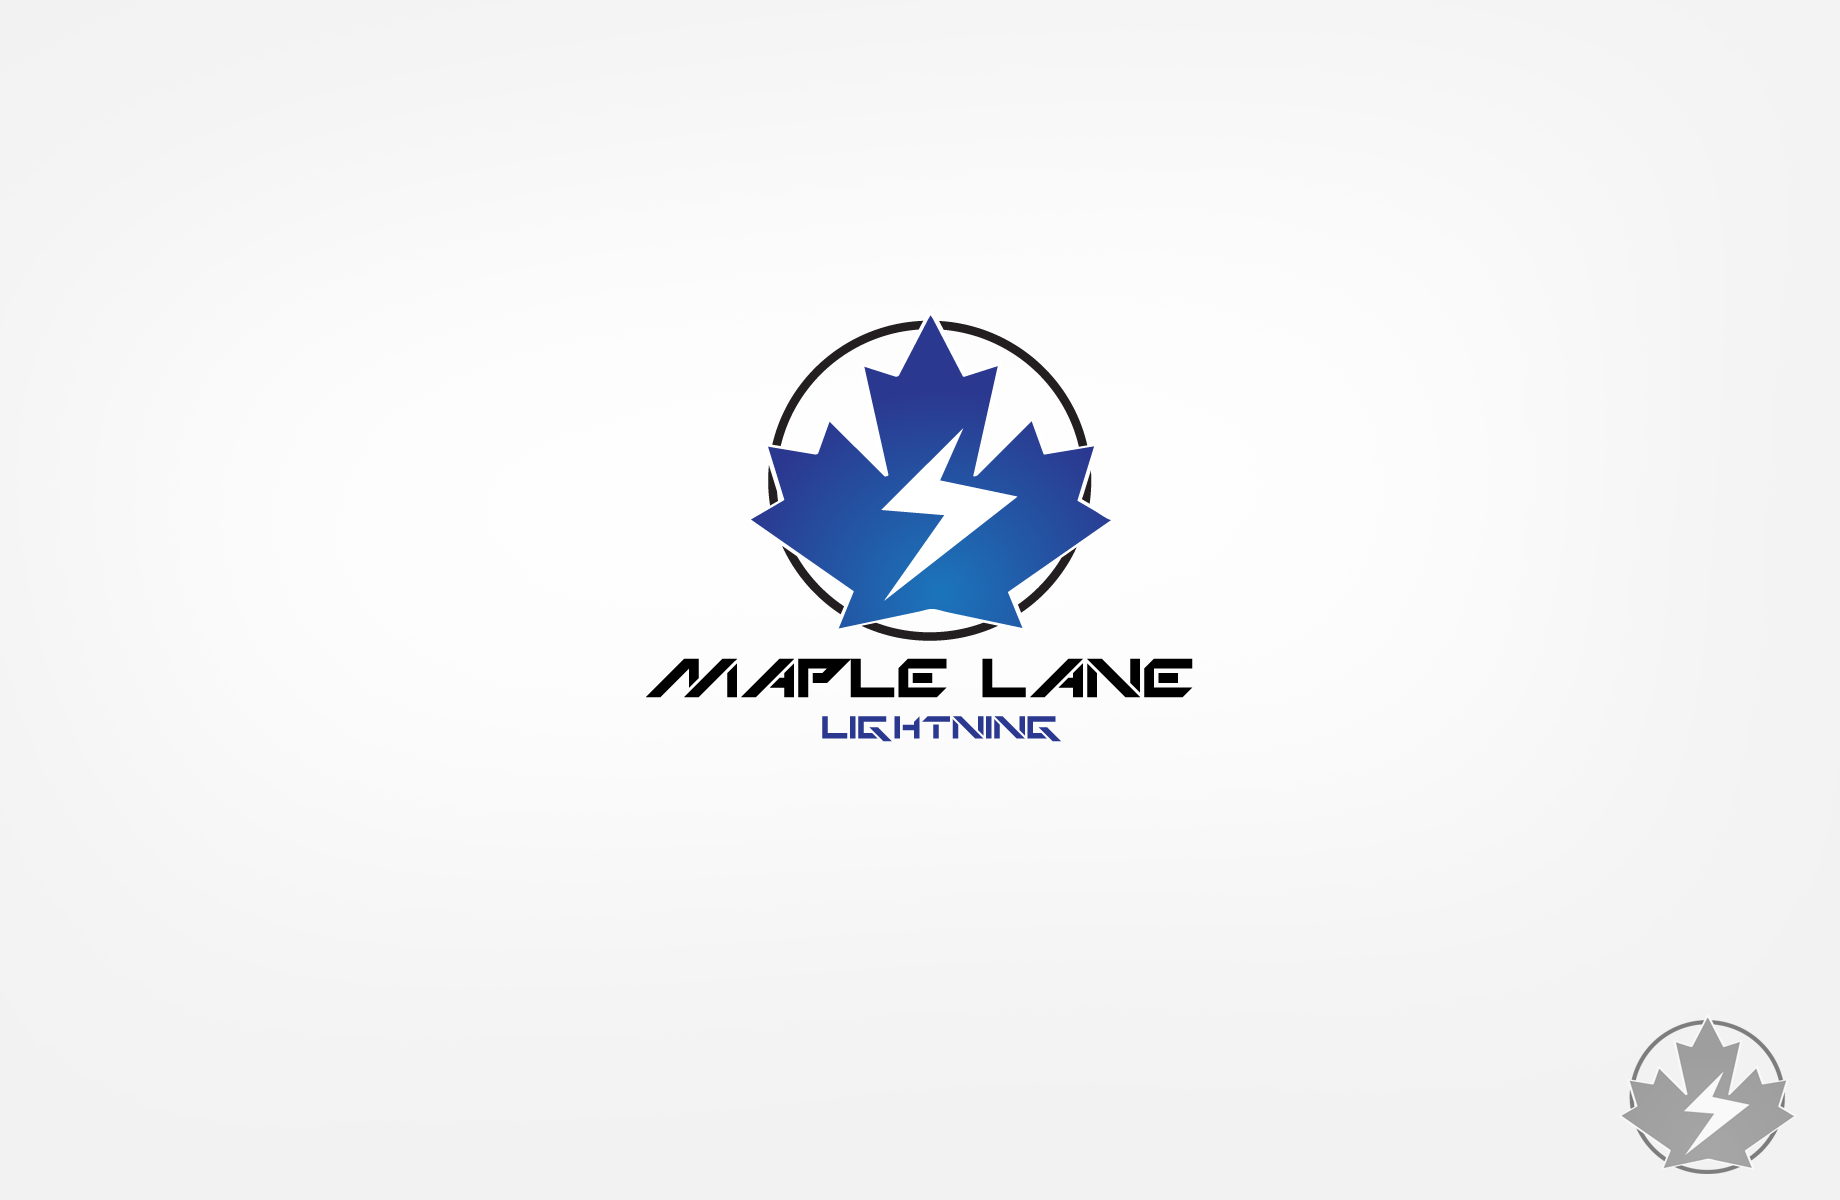 Logo Design by Jan Chua - Entry No. 27 in the Logo Design Contest Maple Lane Logo Design.